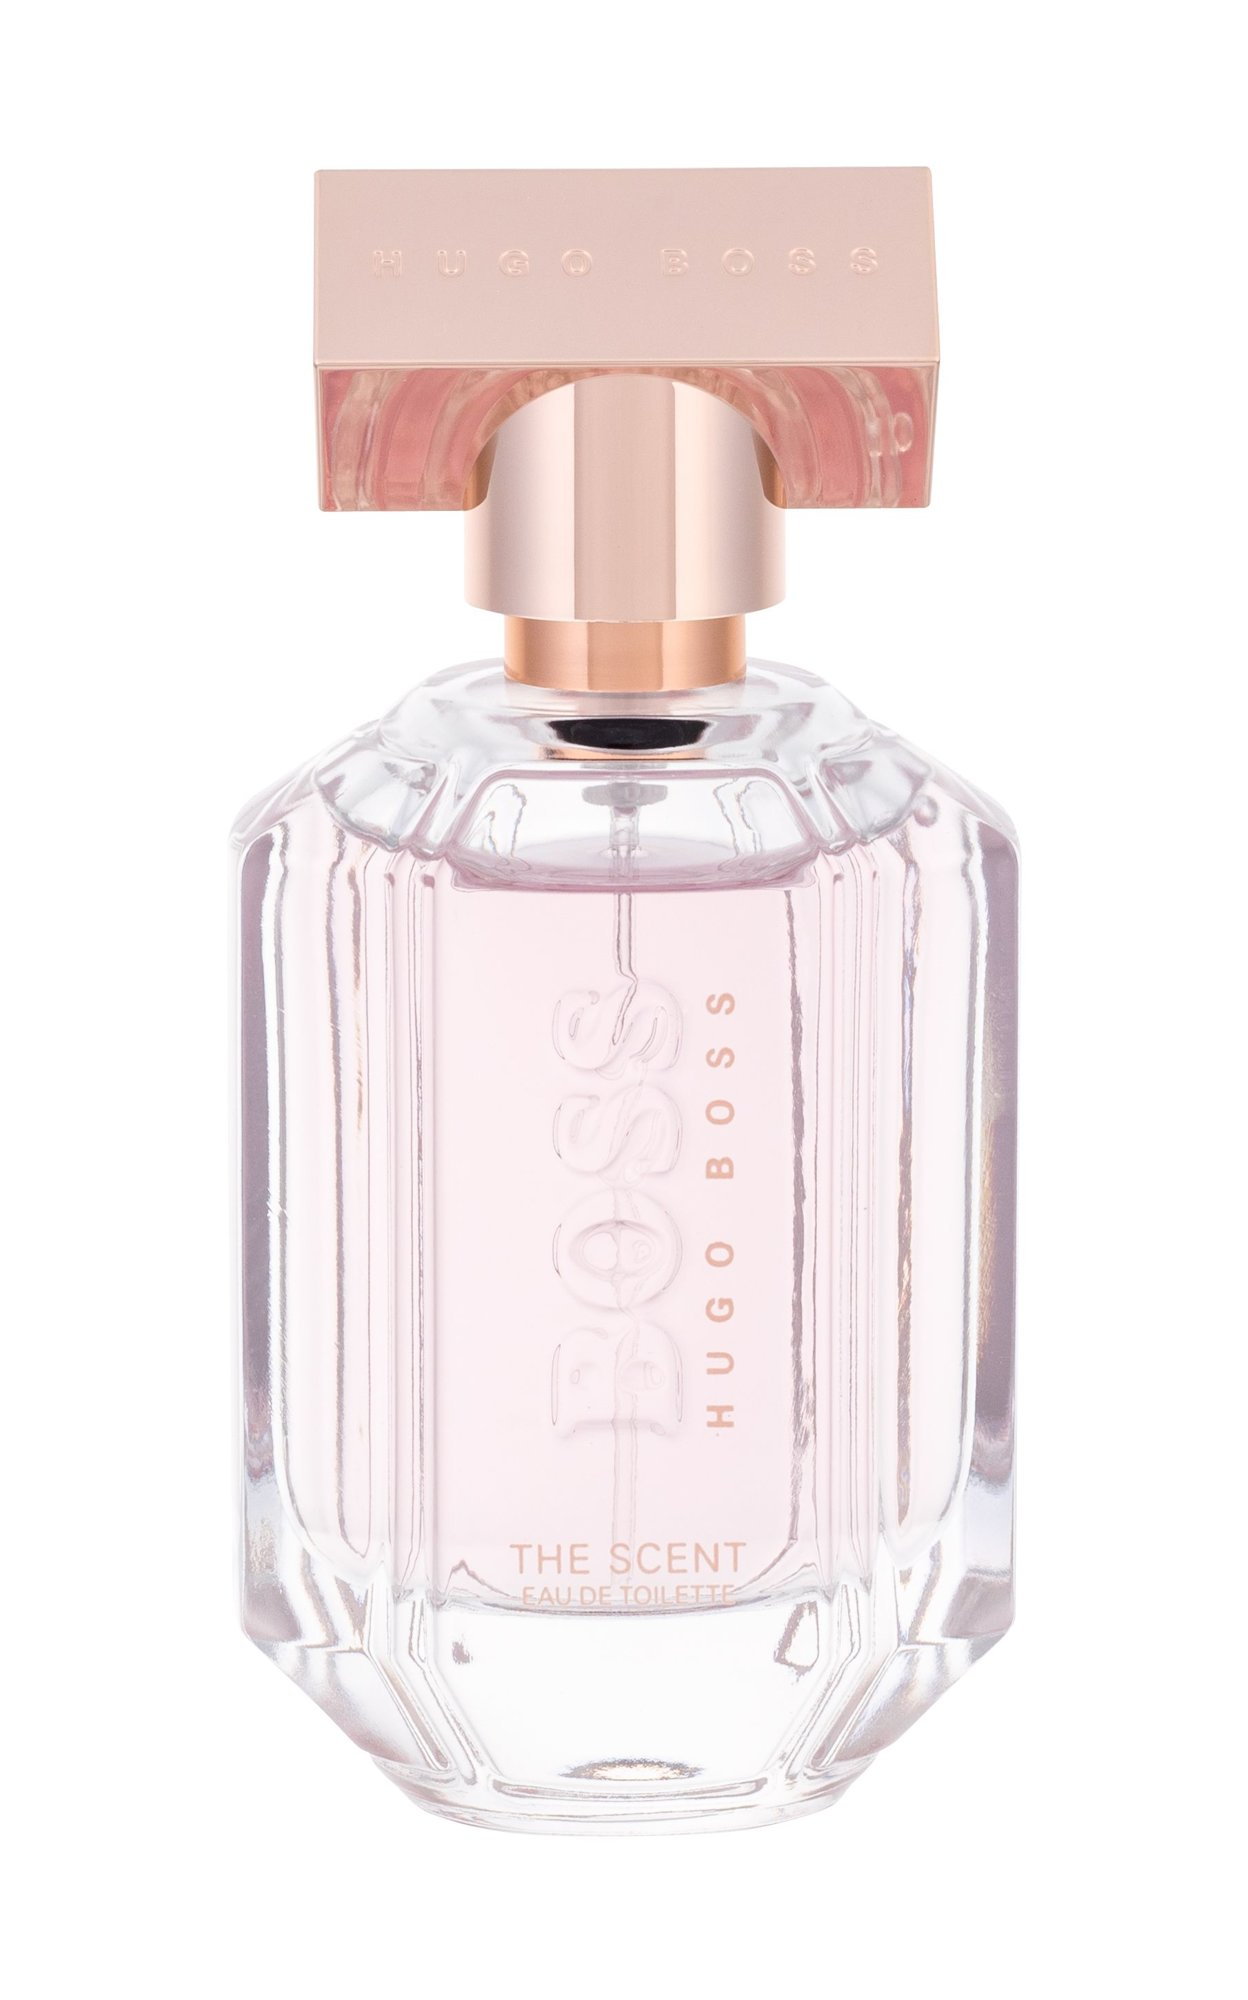 HUGO BOSS Boss The Scent For Her Eau de Toilette 50ml